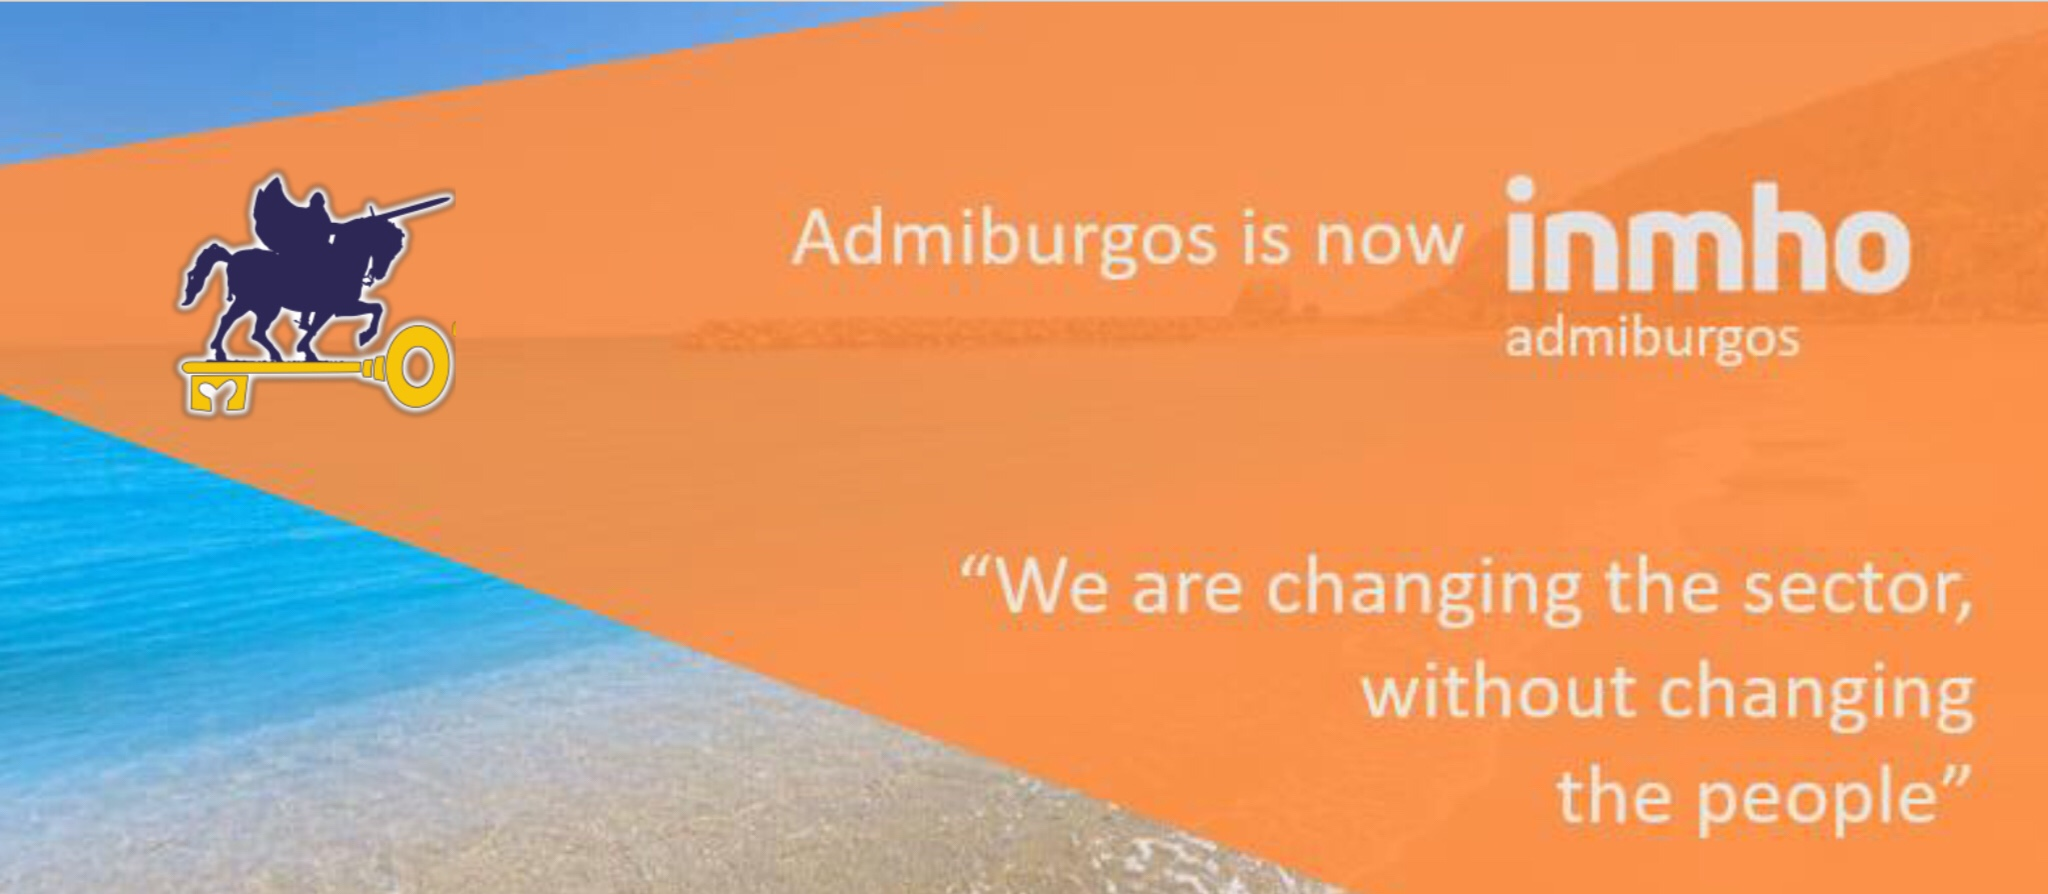 Admiburgos has merged with Madrid based INMHO